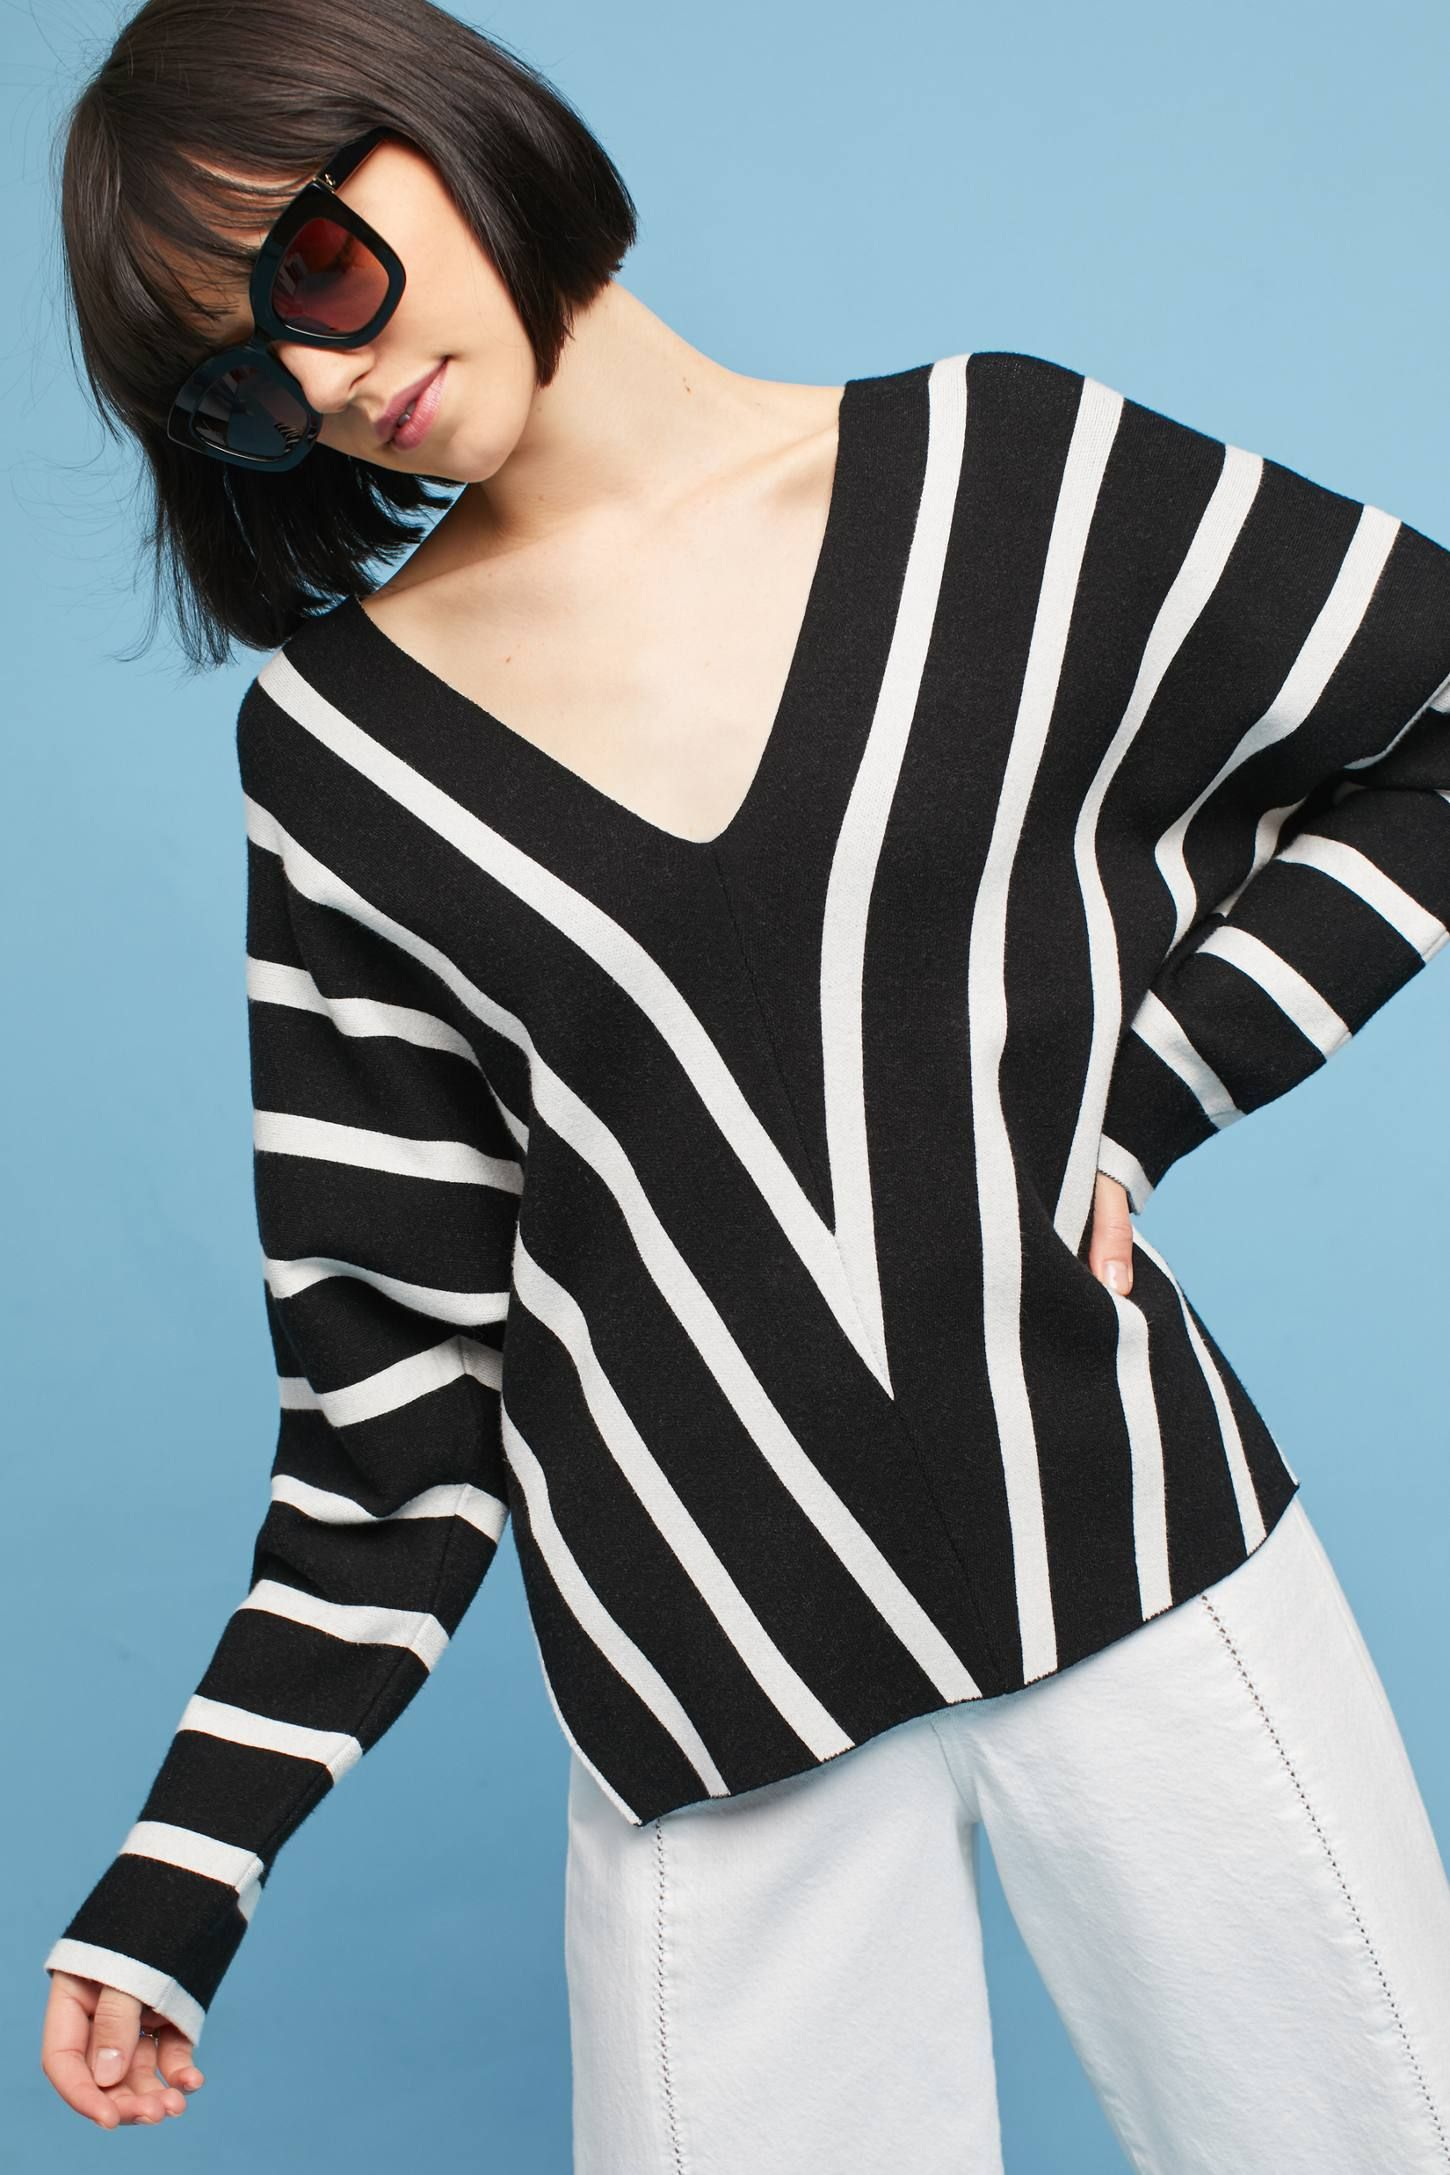 355d6b7929d Shop the Striped V-Neck Pullover and more Anthropologie at Anthropologie  today. Read customer reviews